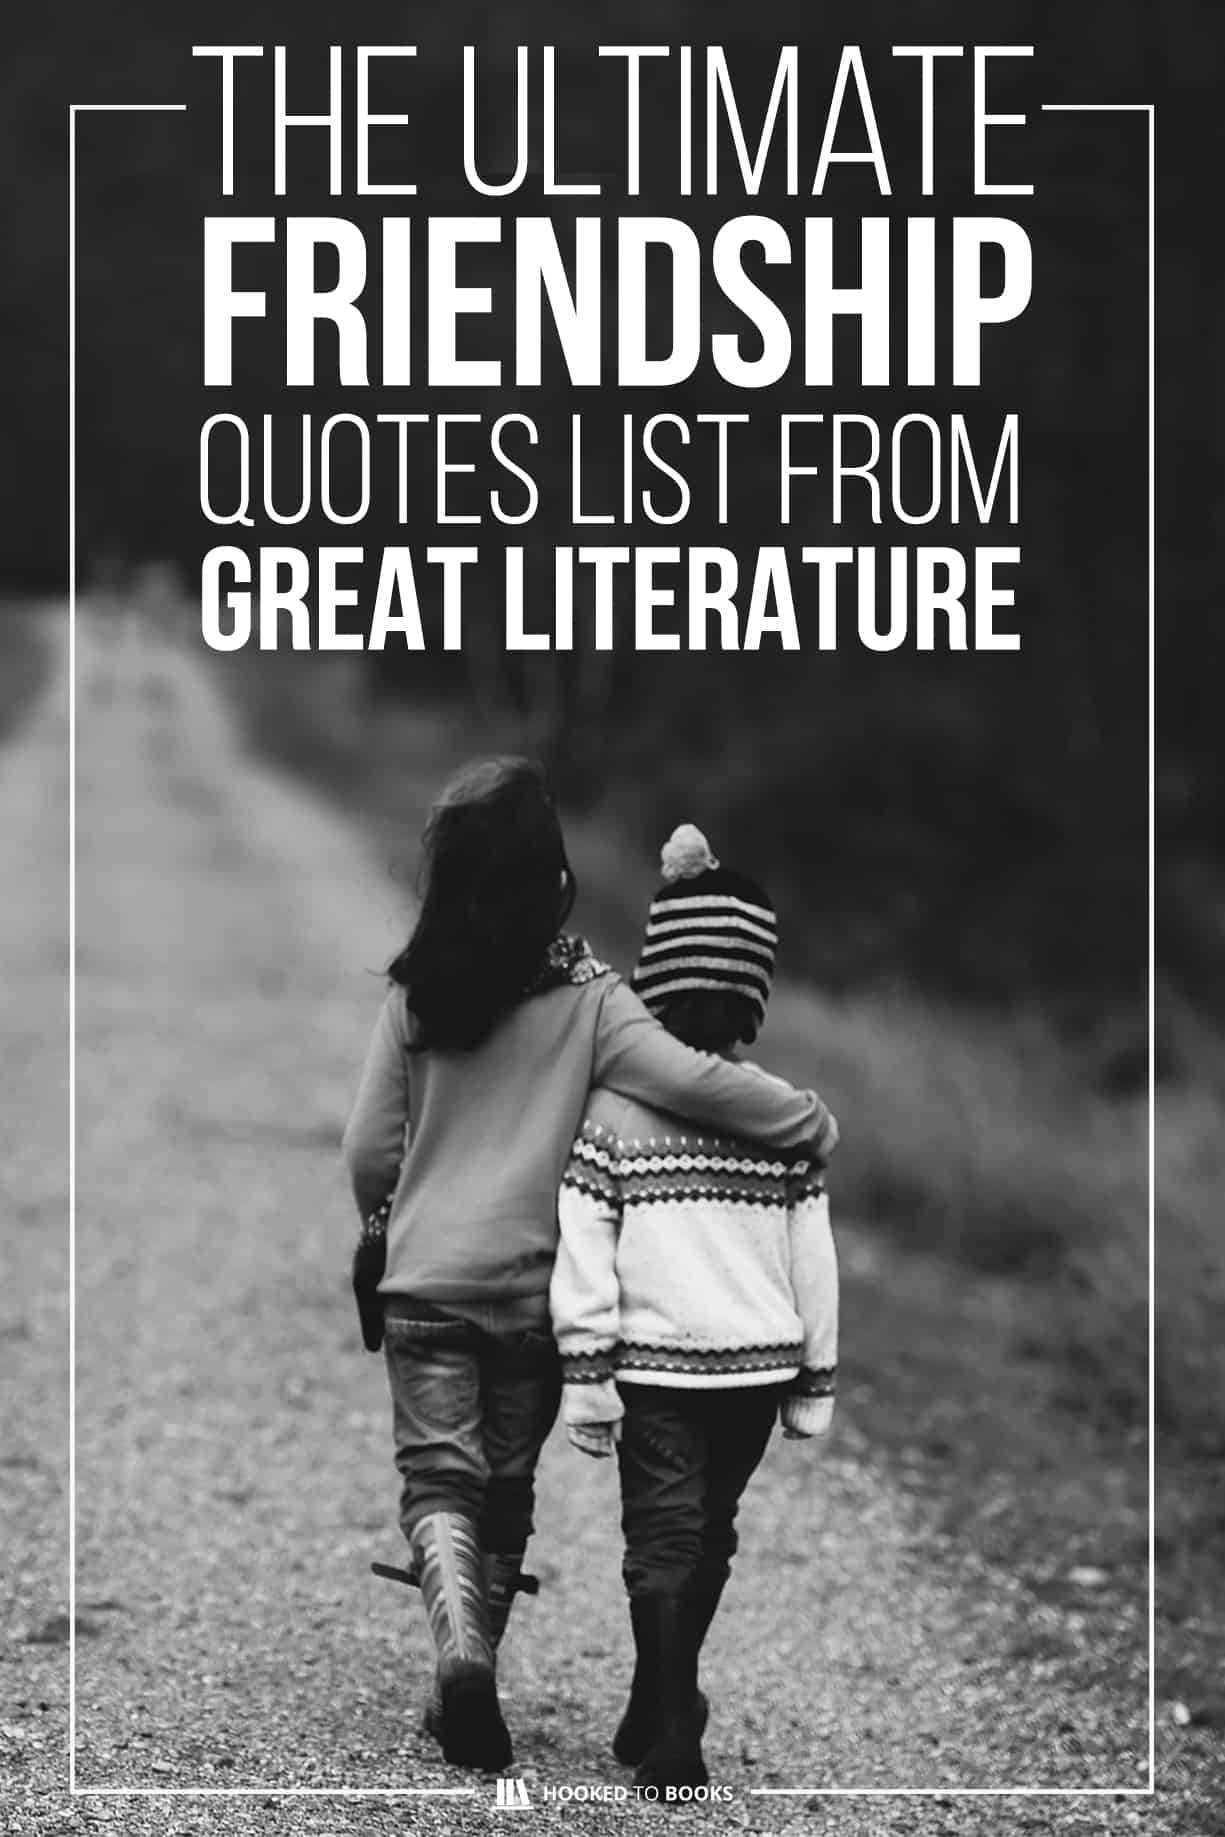 The Ultimate Friendship Quotes List from Great Literature